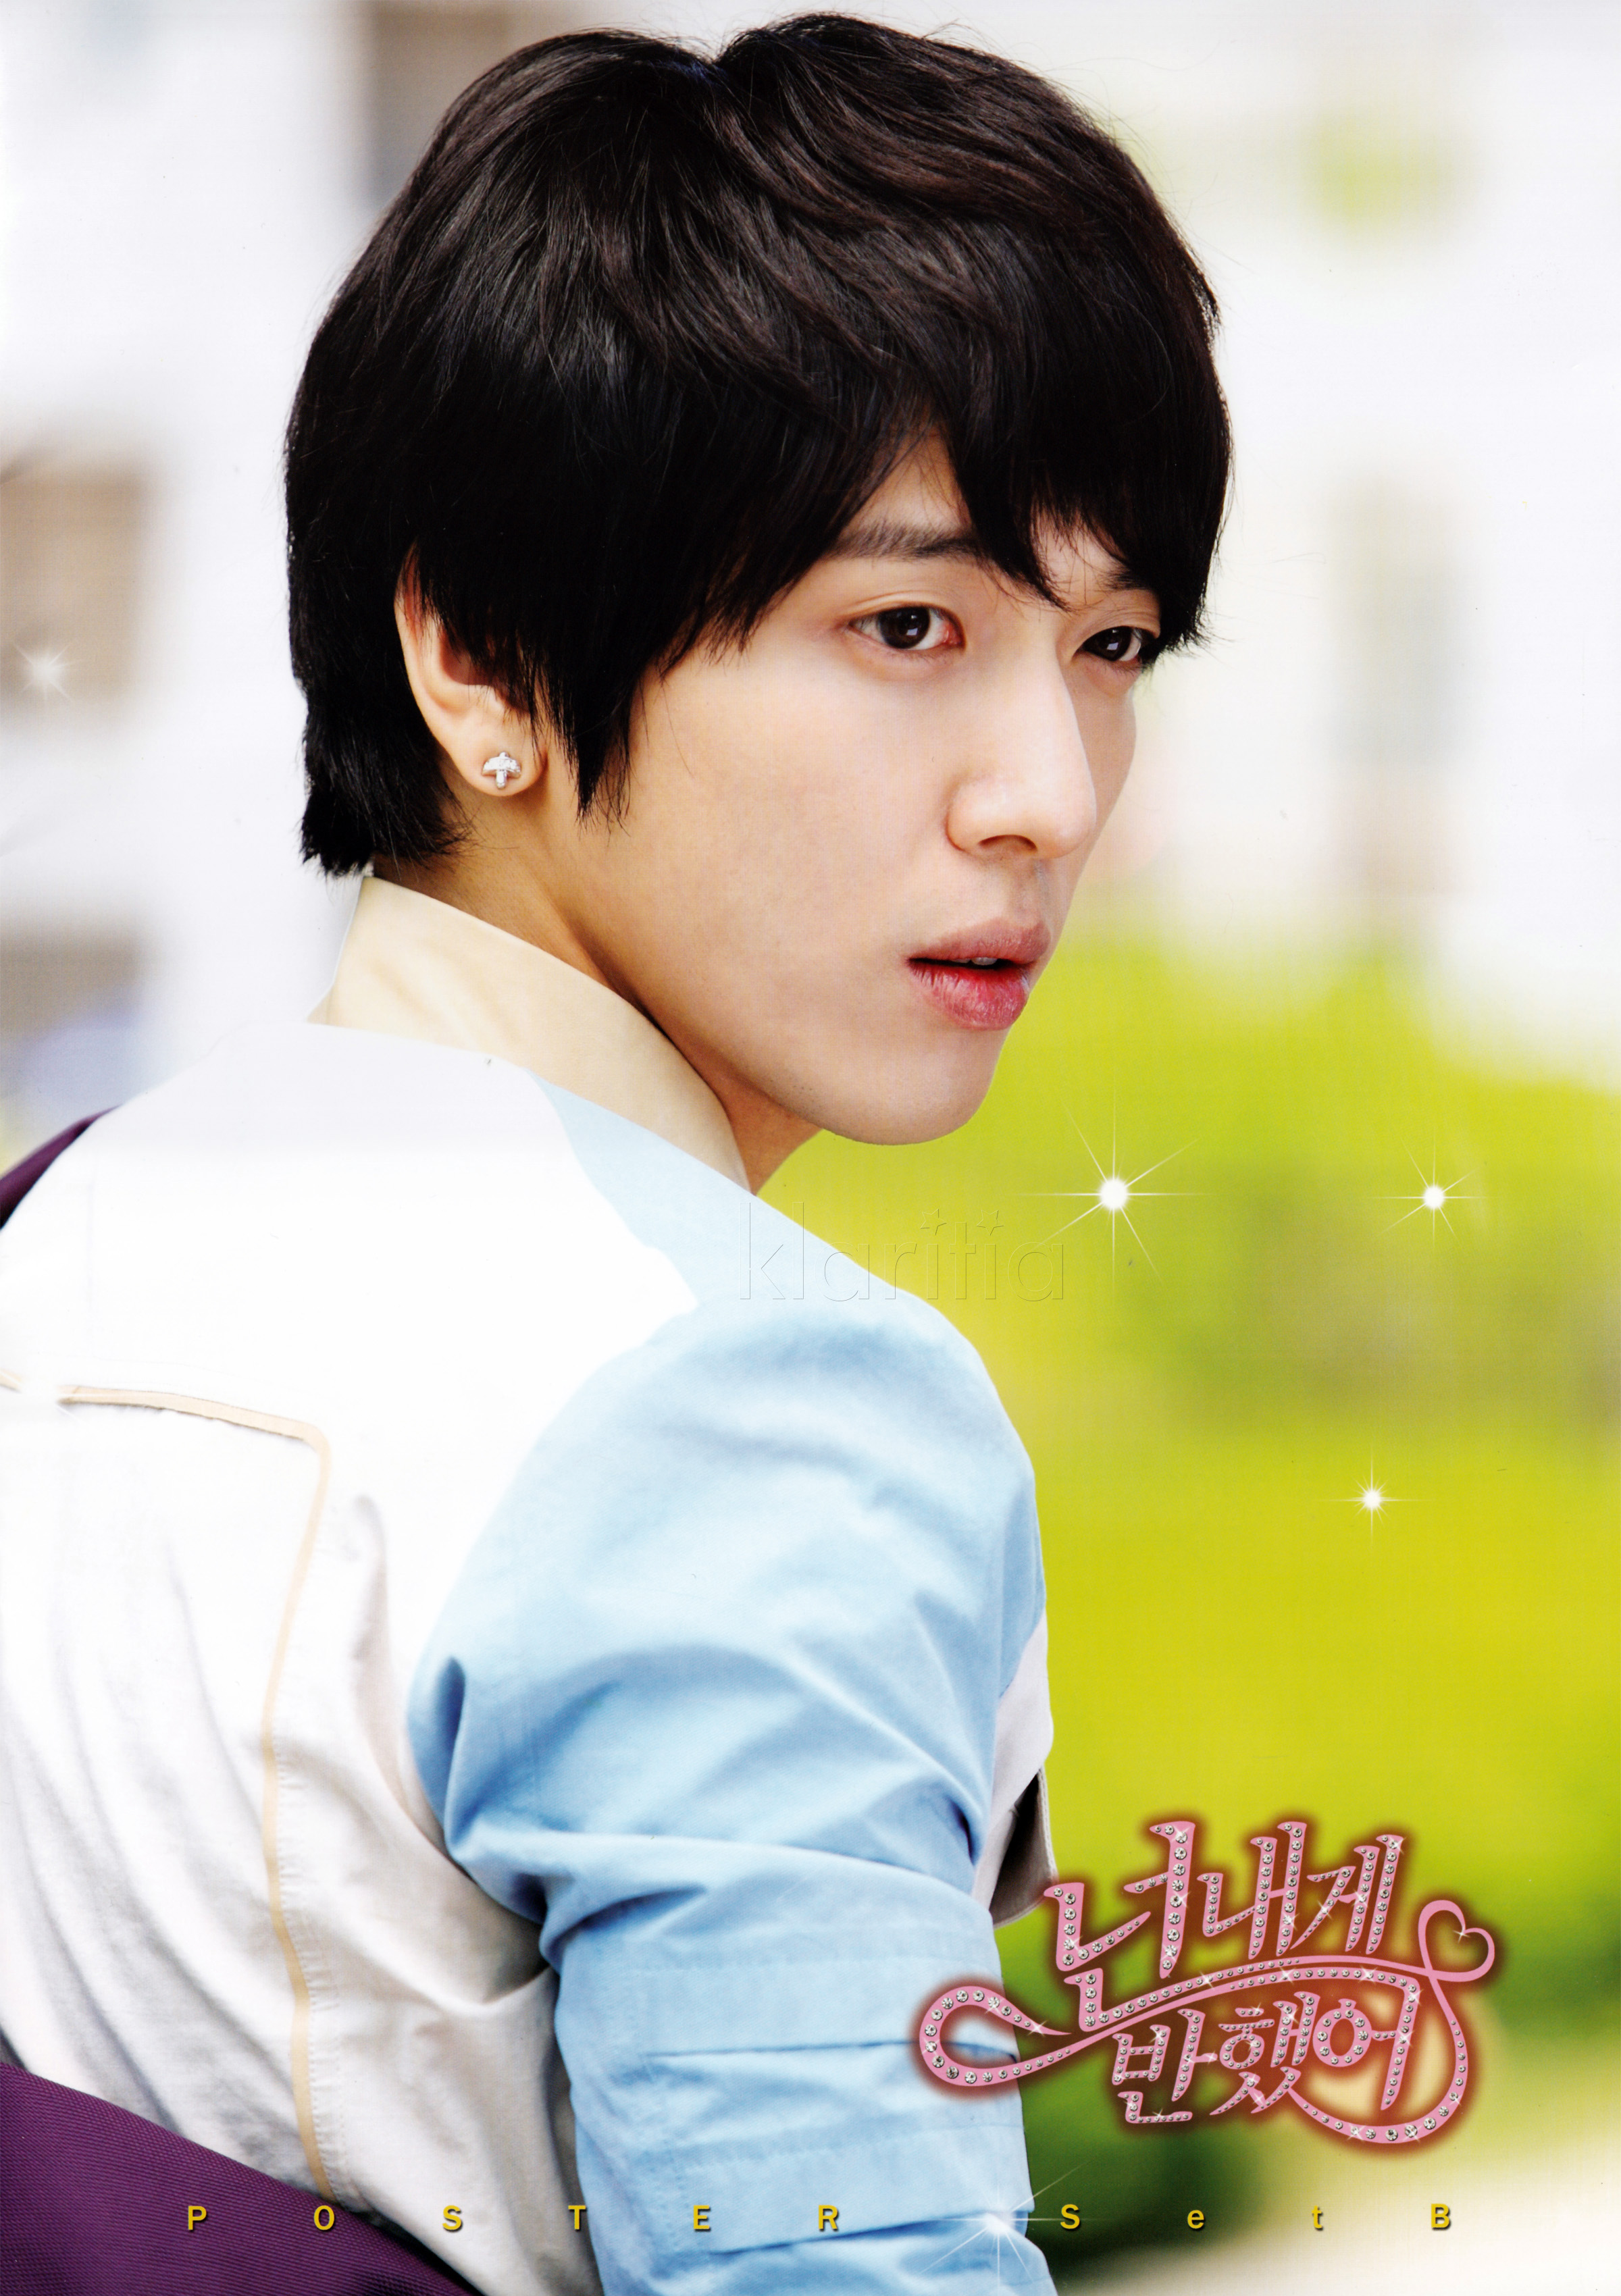 Heartstrings : Just a fan